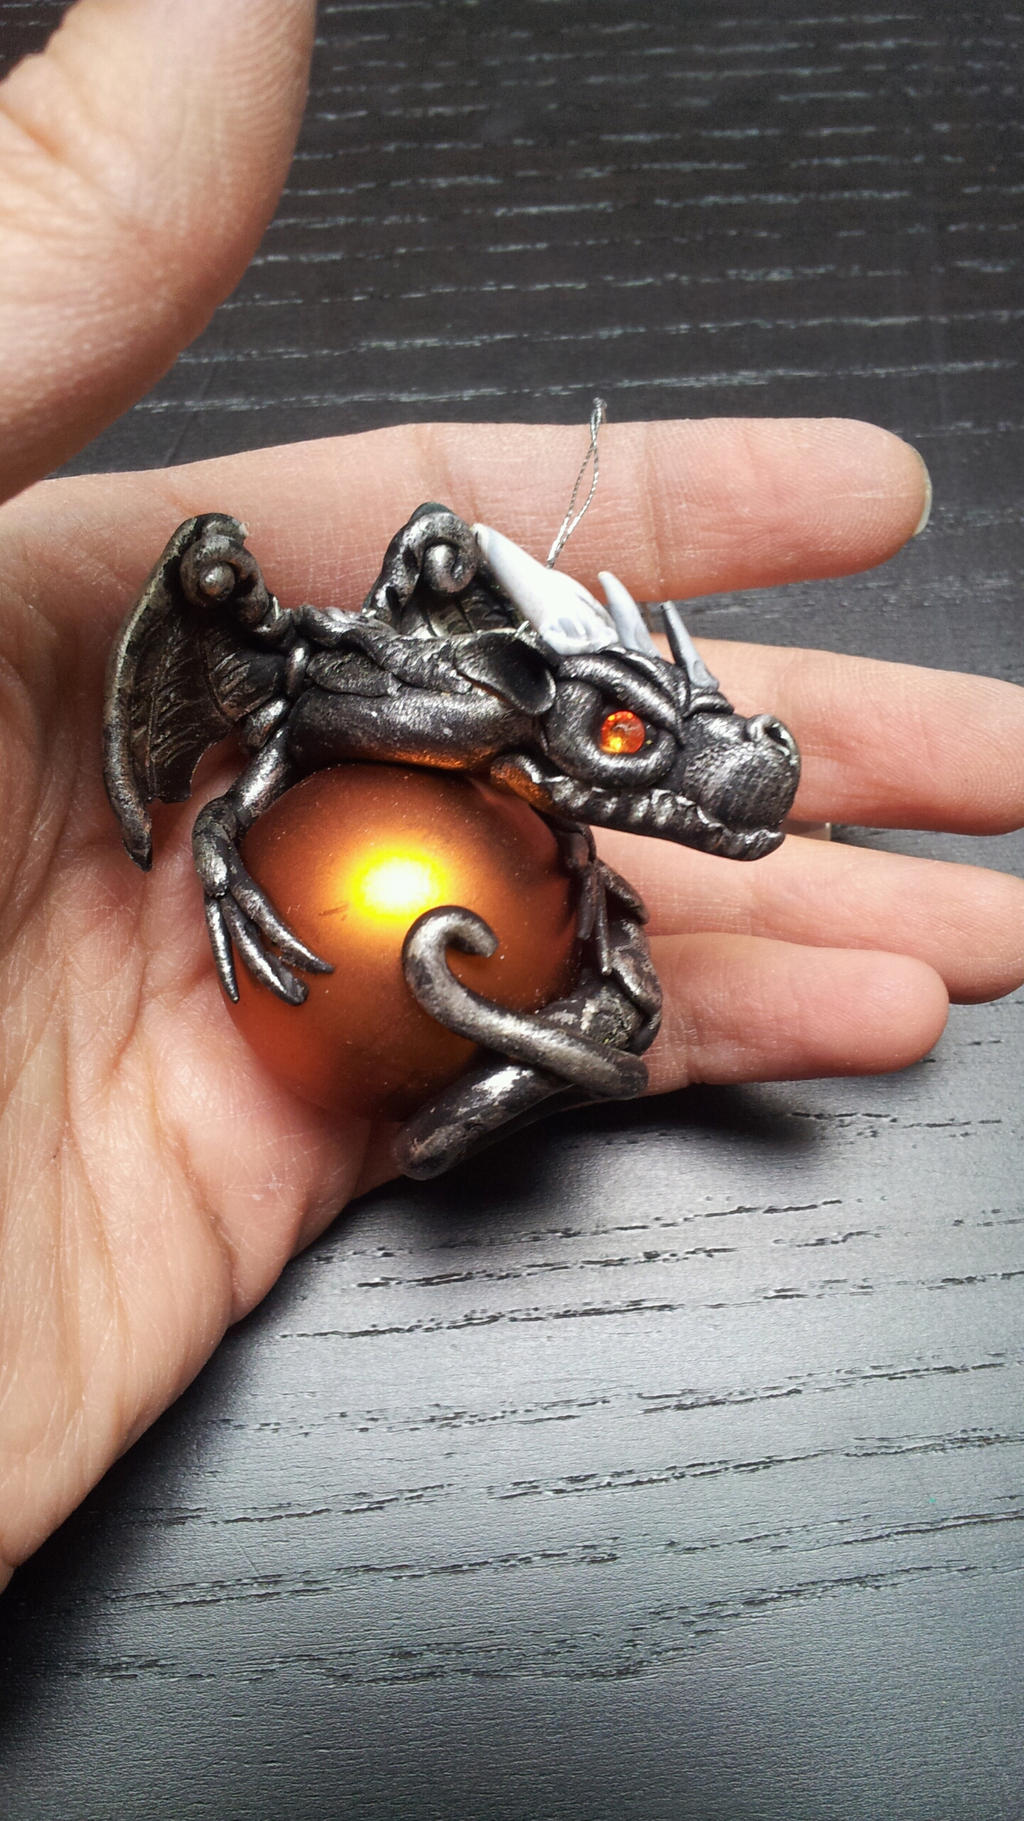 Silver Black Dragon Christmas Ornament by AstridMakosla on DeviantArt